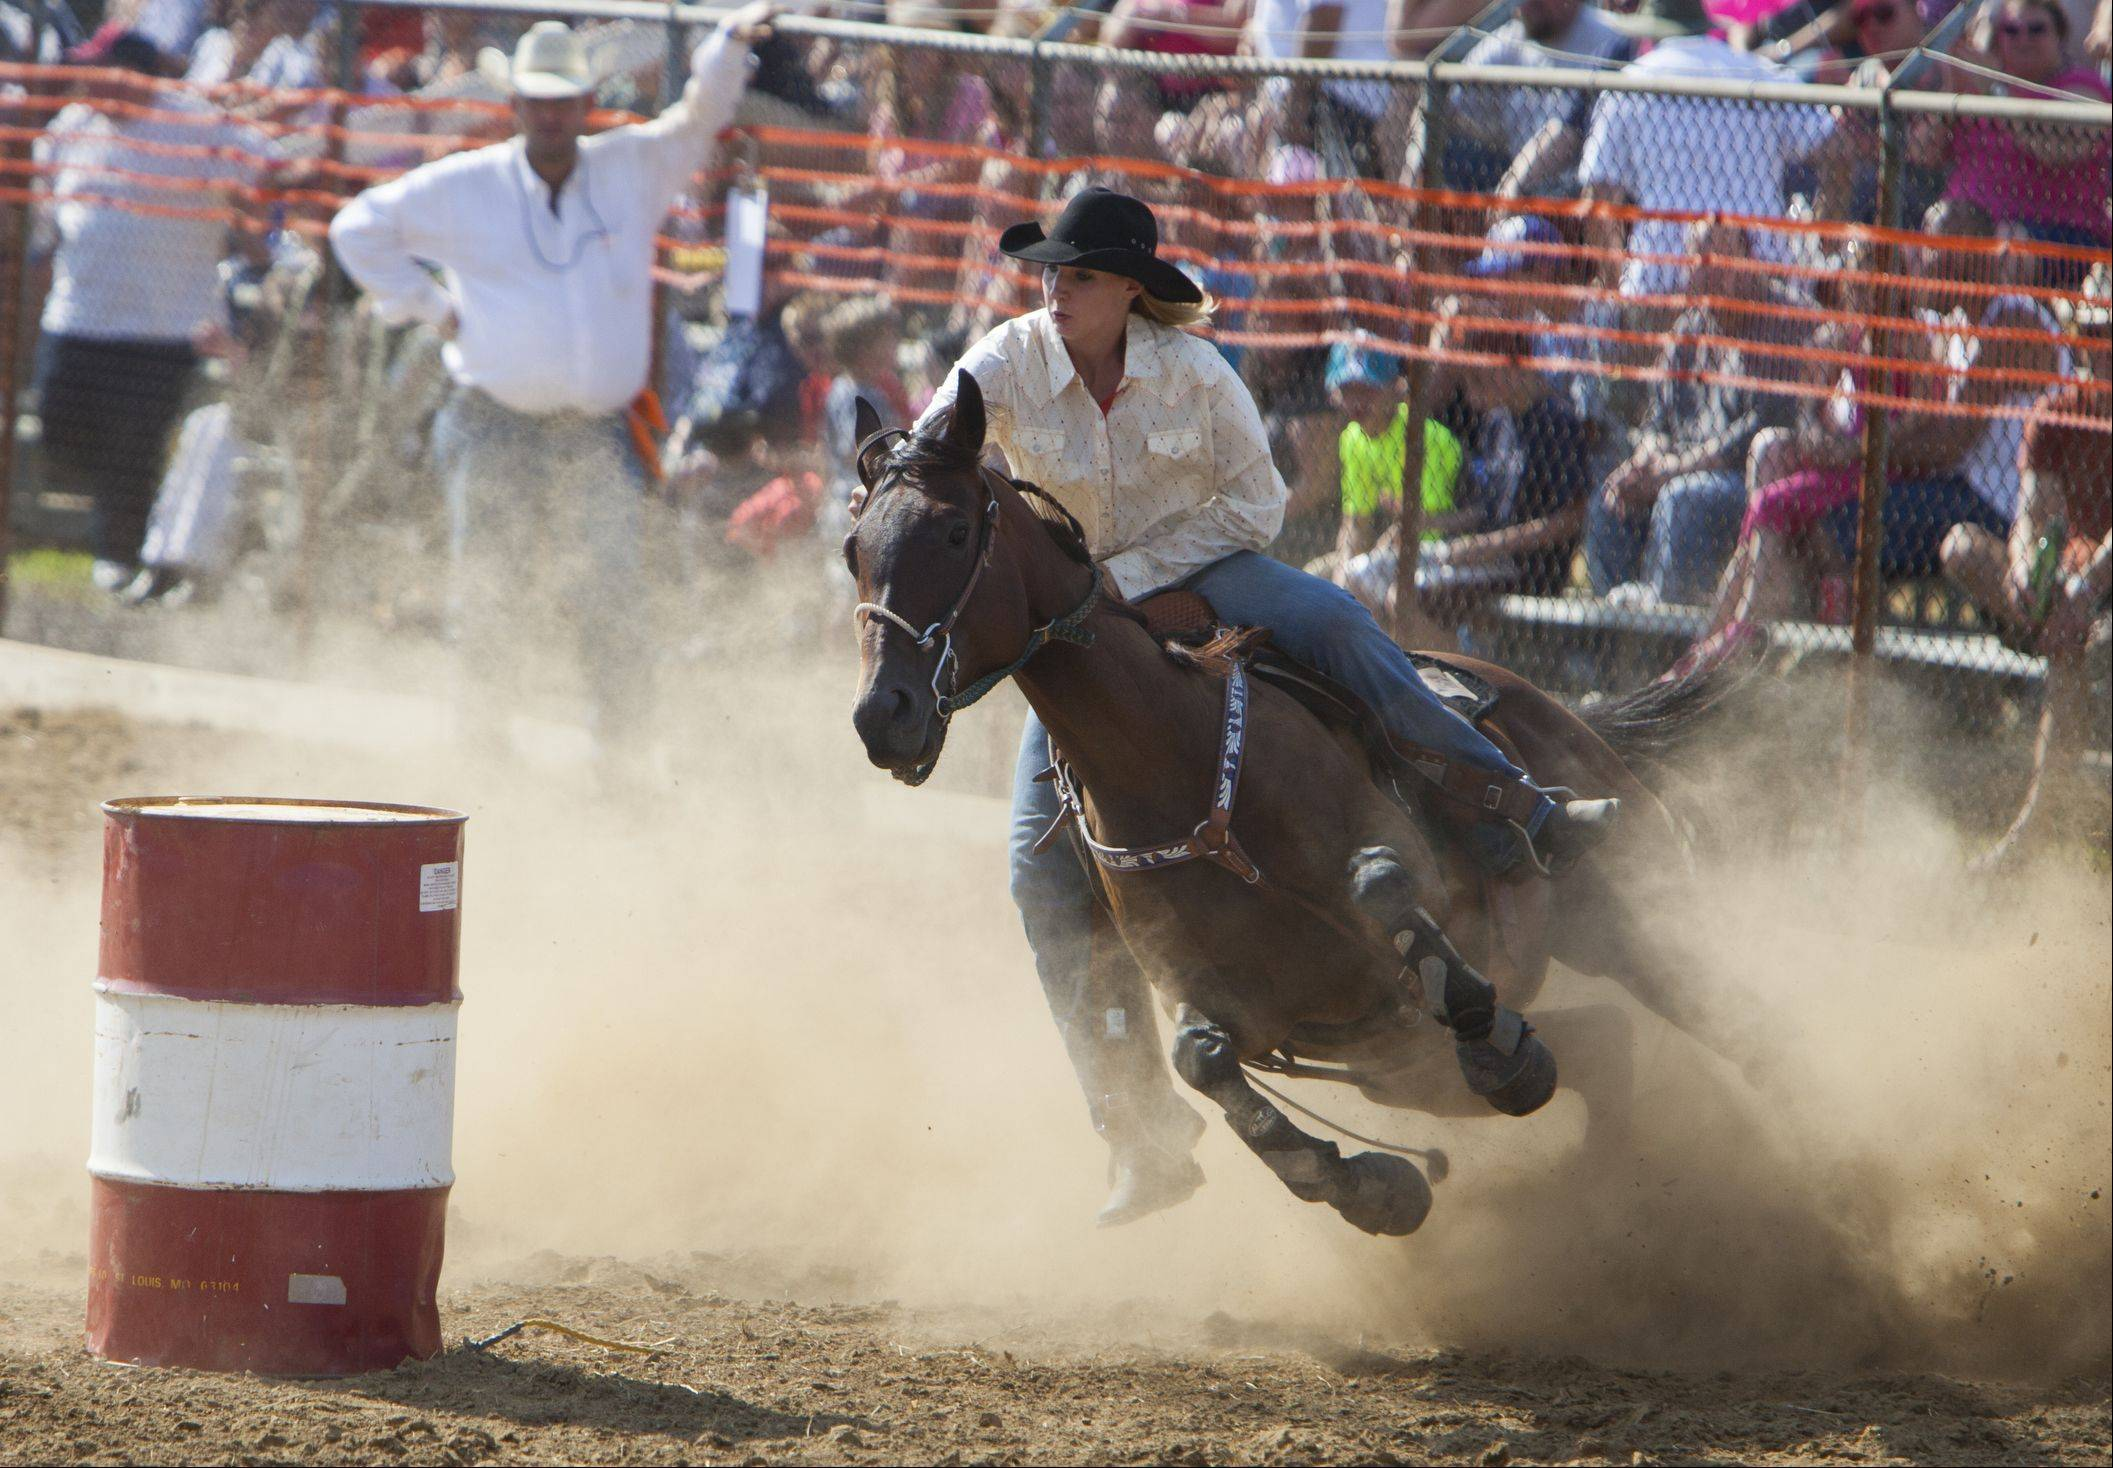 Bronco busters entertain crowds at 49th annual Wauconda rodeo